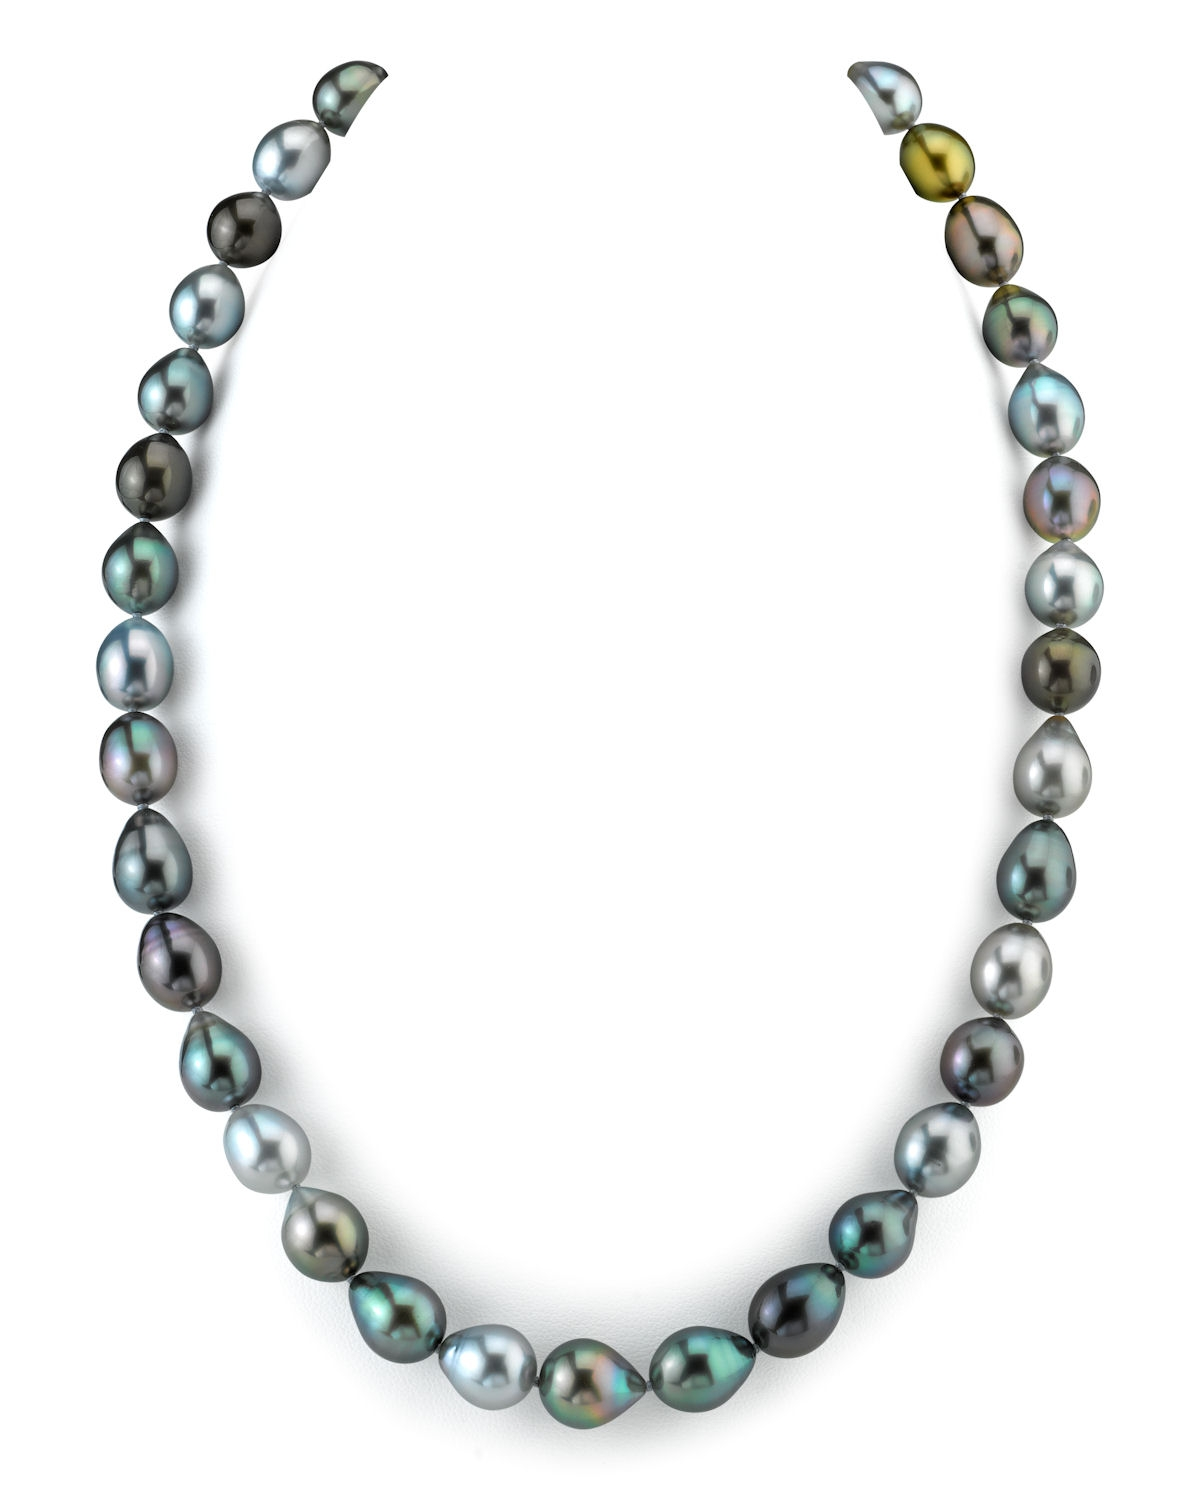 8-10mm Tahitian South Sea Multicolor Drop Pearl Necklace - AAAA Quality